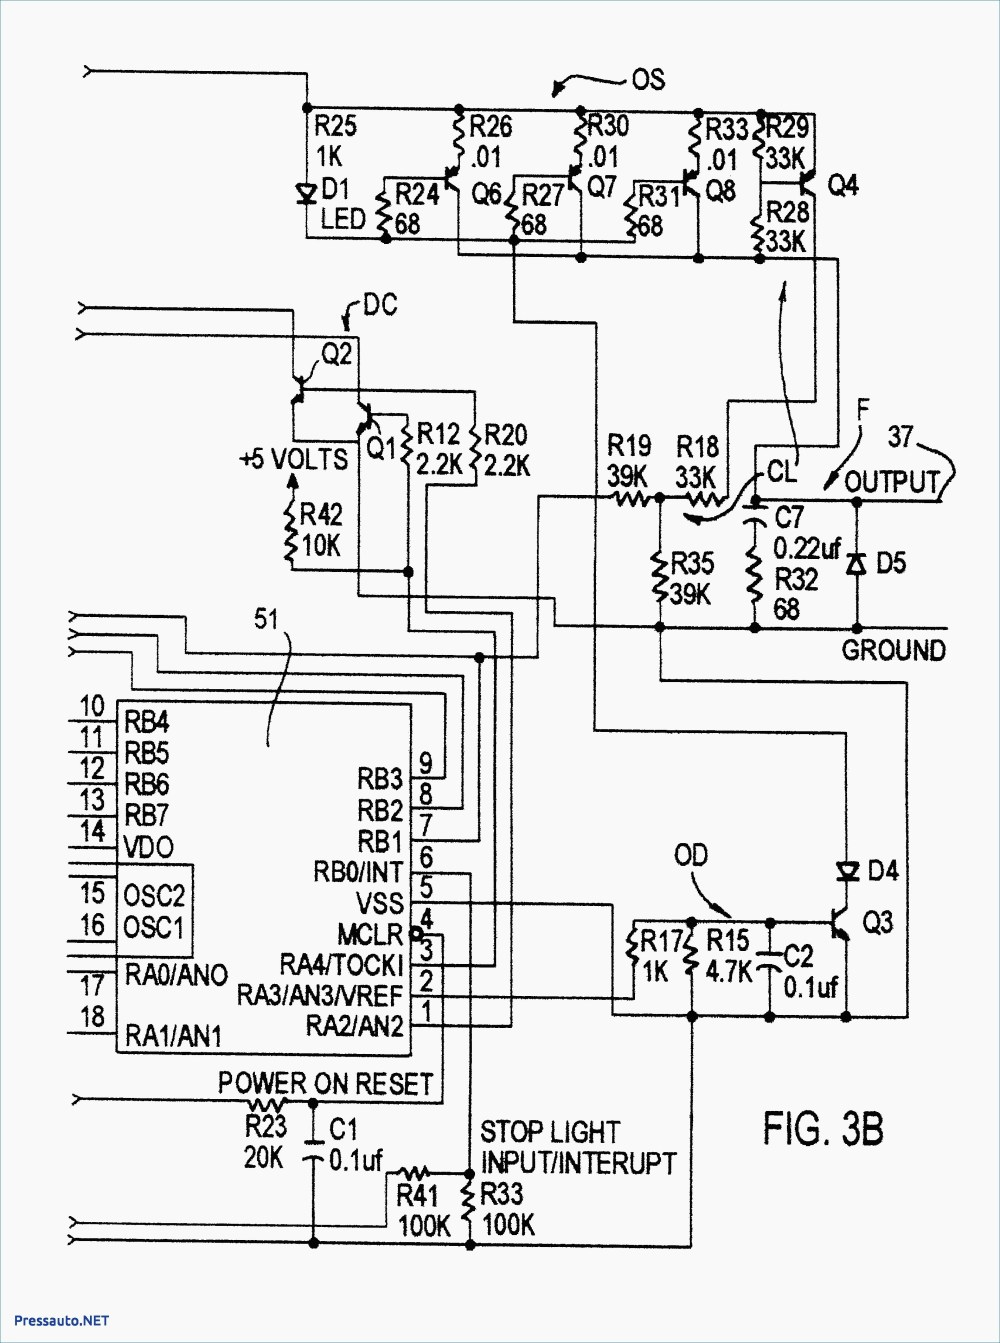 medium resolution of gm parts diagrams exploded views 2003 gmc parts diagram radio wiring on 1962 c10 chevy truck